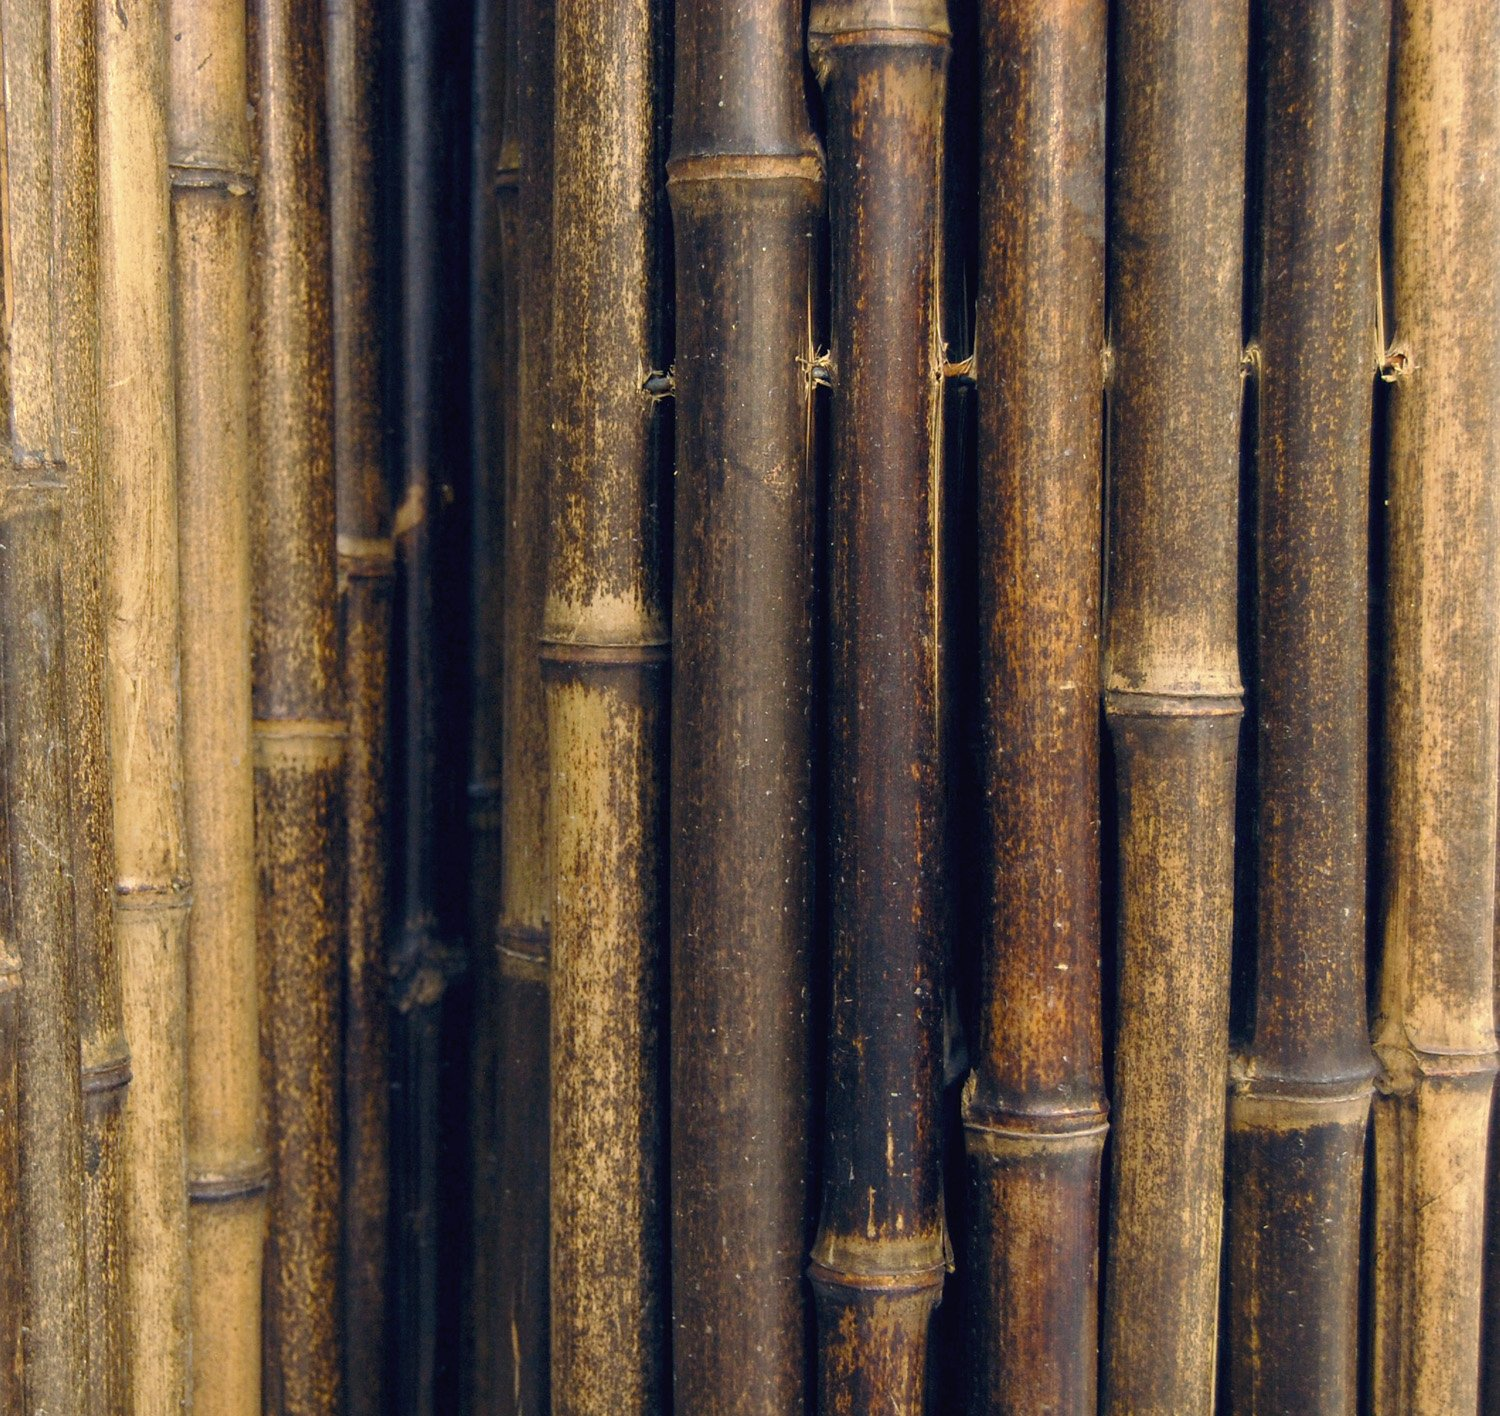 Amazon natural black rolled bamboo fencing 1 x 3 x 8 amazon natural black rolled bamboo fencing 1 x 3 x 8 outdoor decorative fences patio lawn garden baanklon Gallery